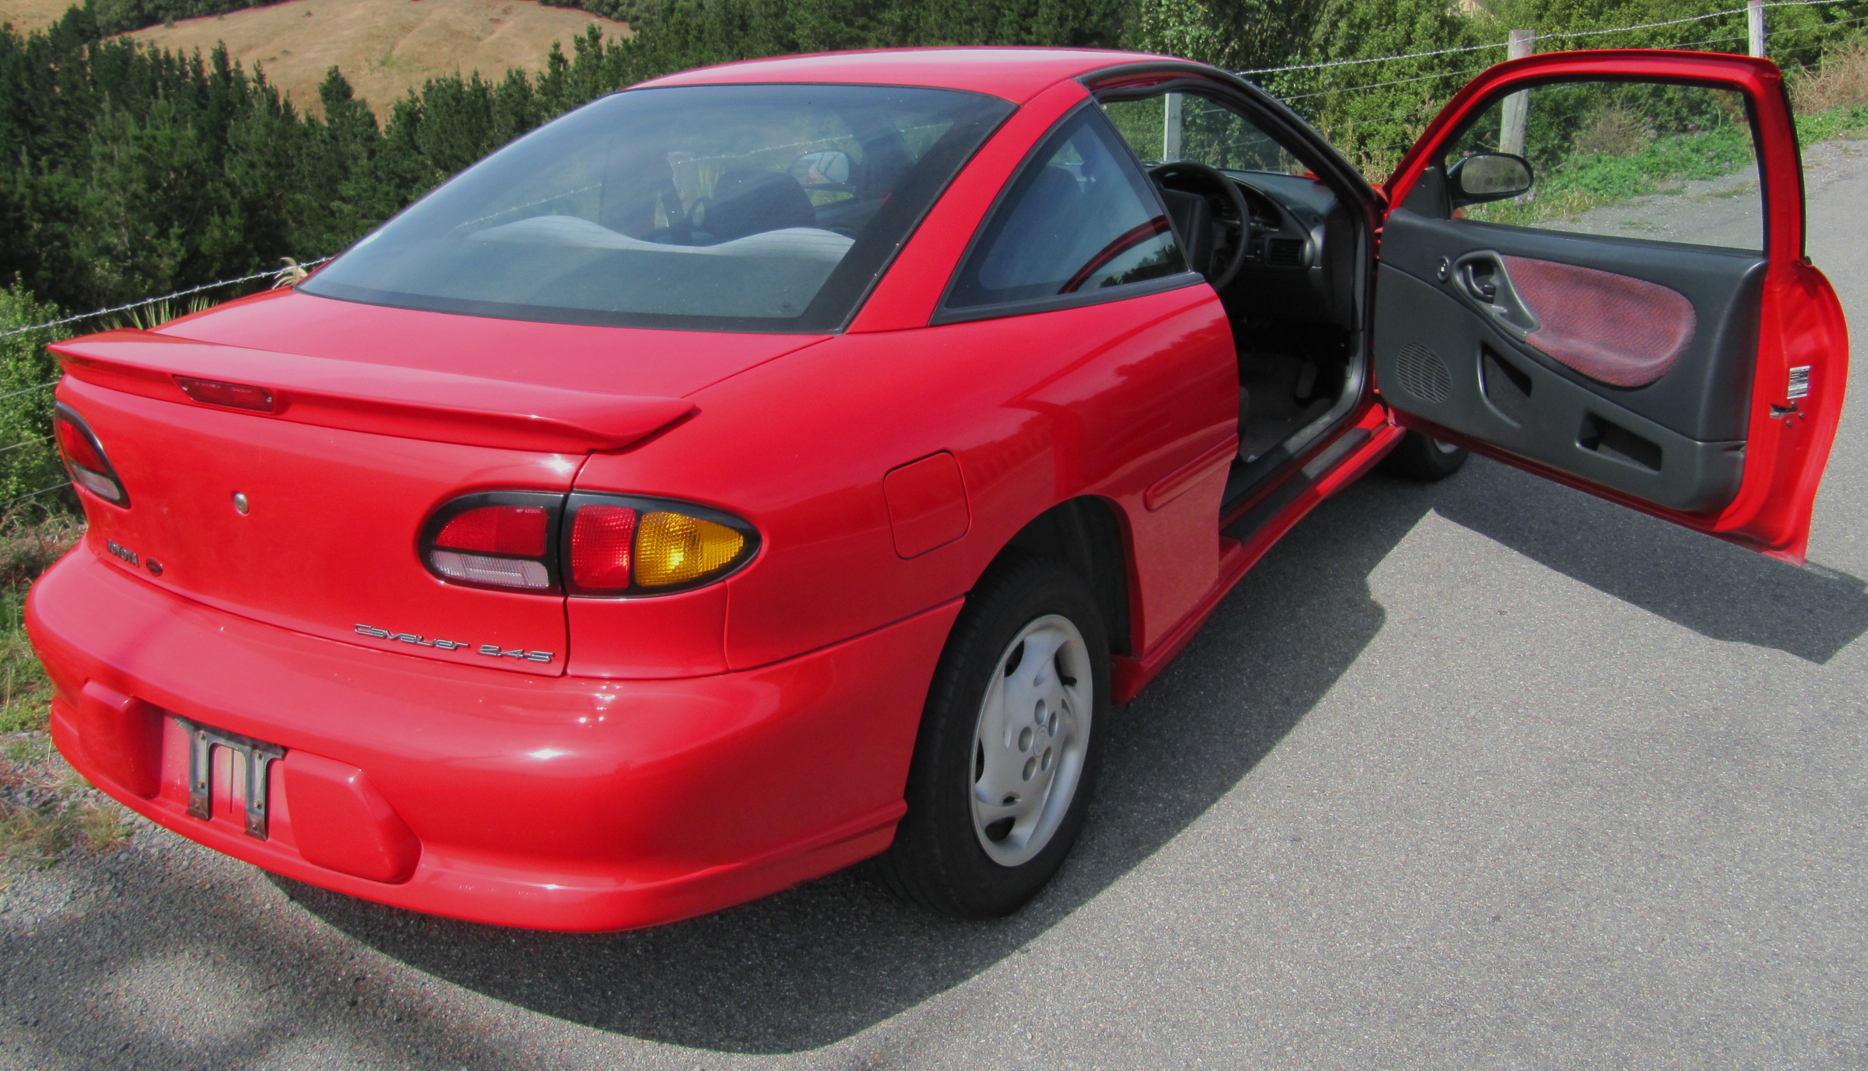 chevrolet cavalier convertible (j) 1996 wallpaper